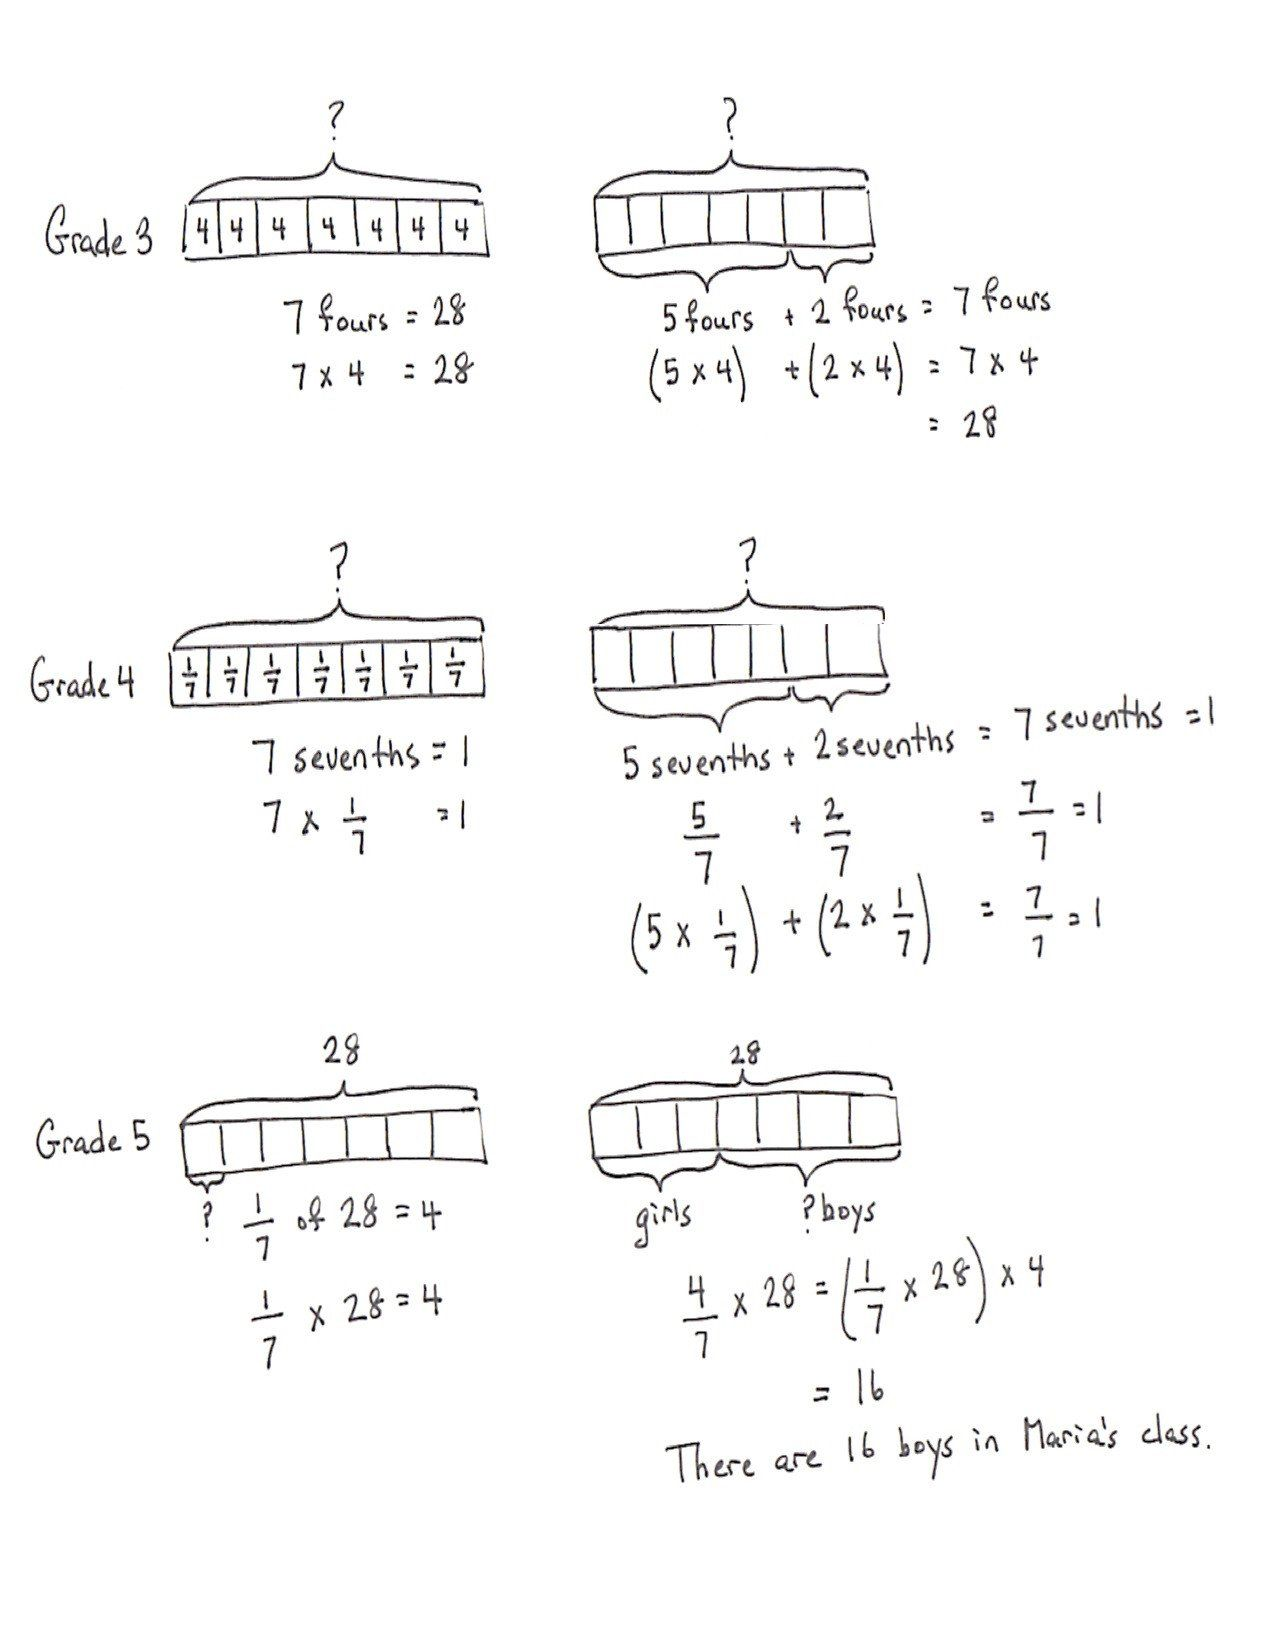 Tape Diagram Worksheet 6th Grade 27 Tape Diagram Math 4th Grade Wiring Diagram List In 2020